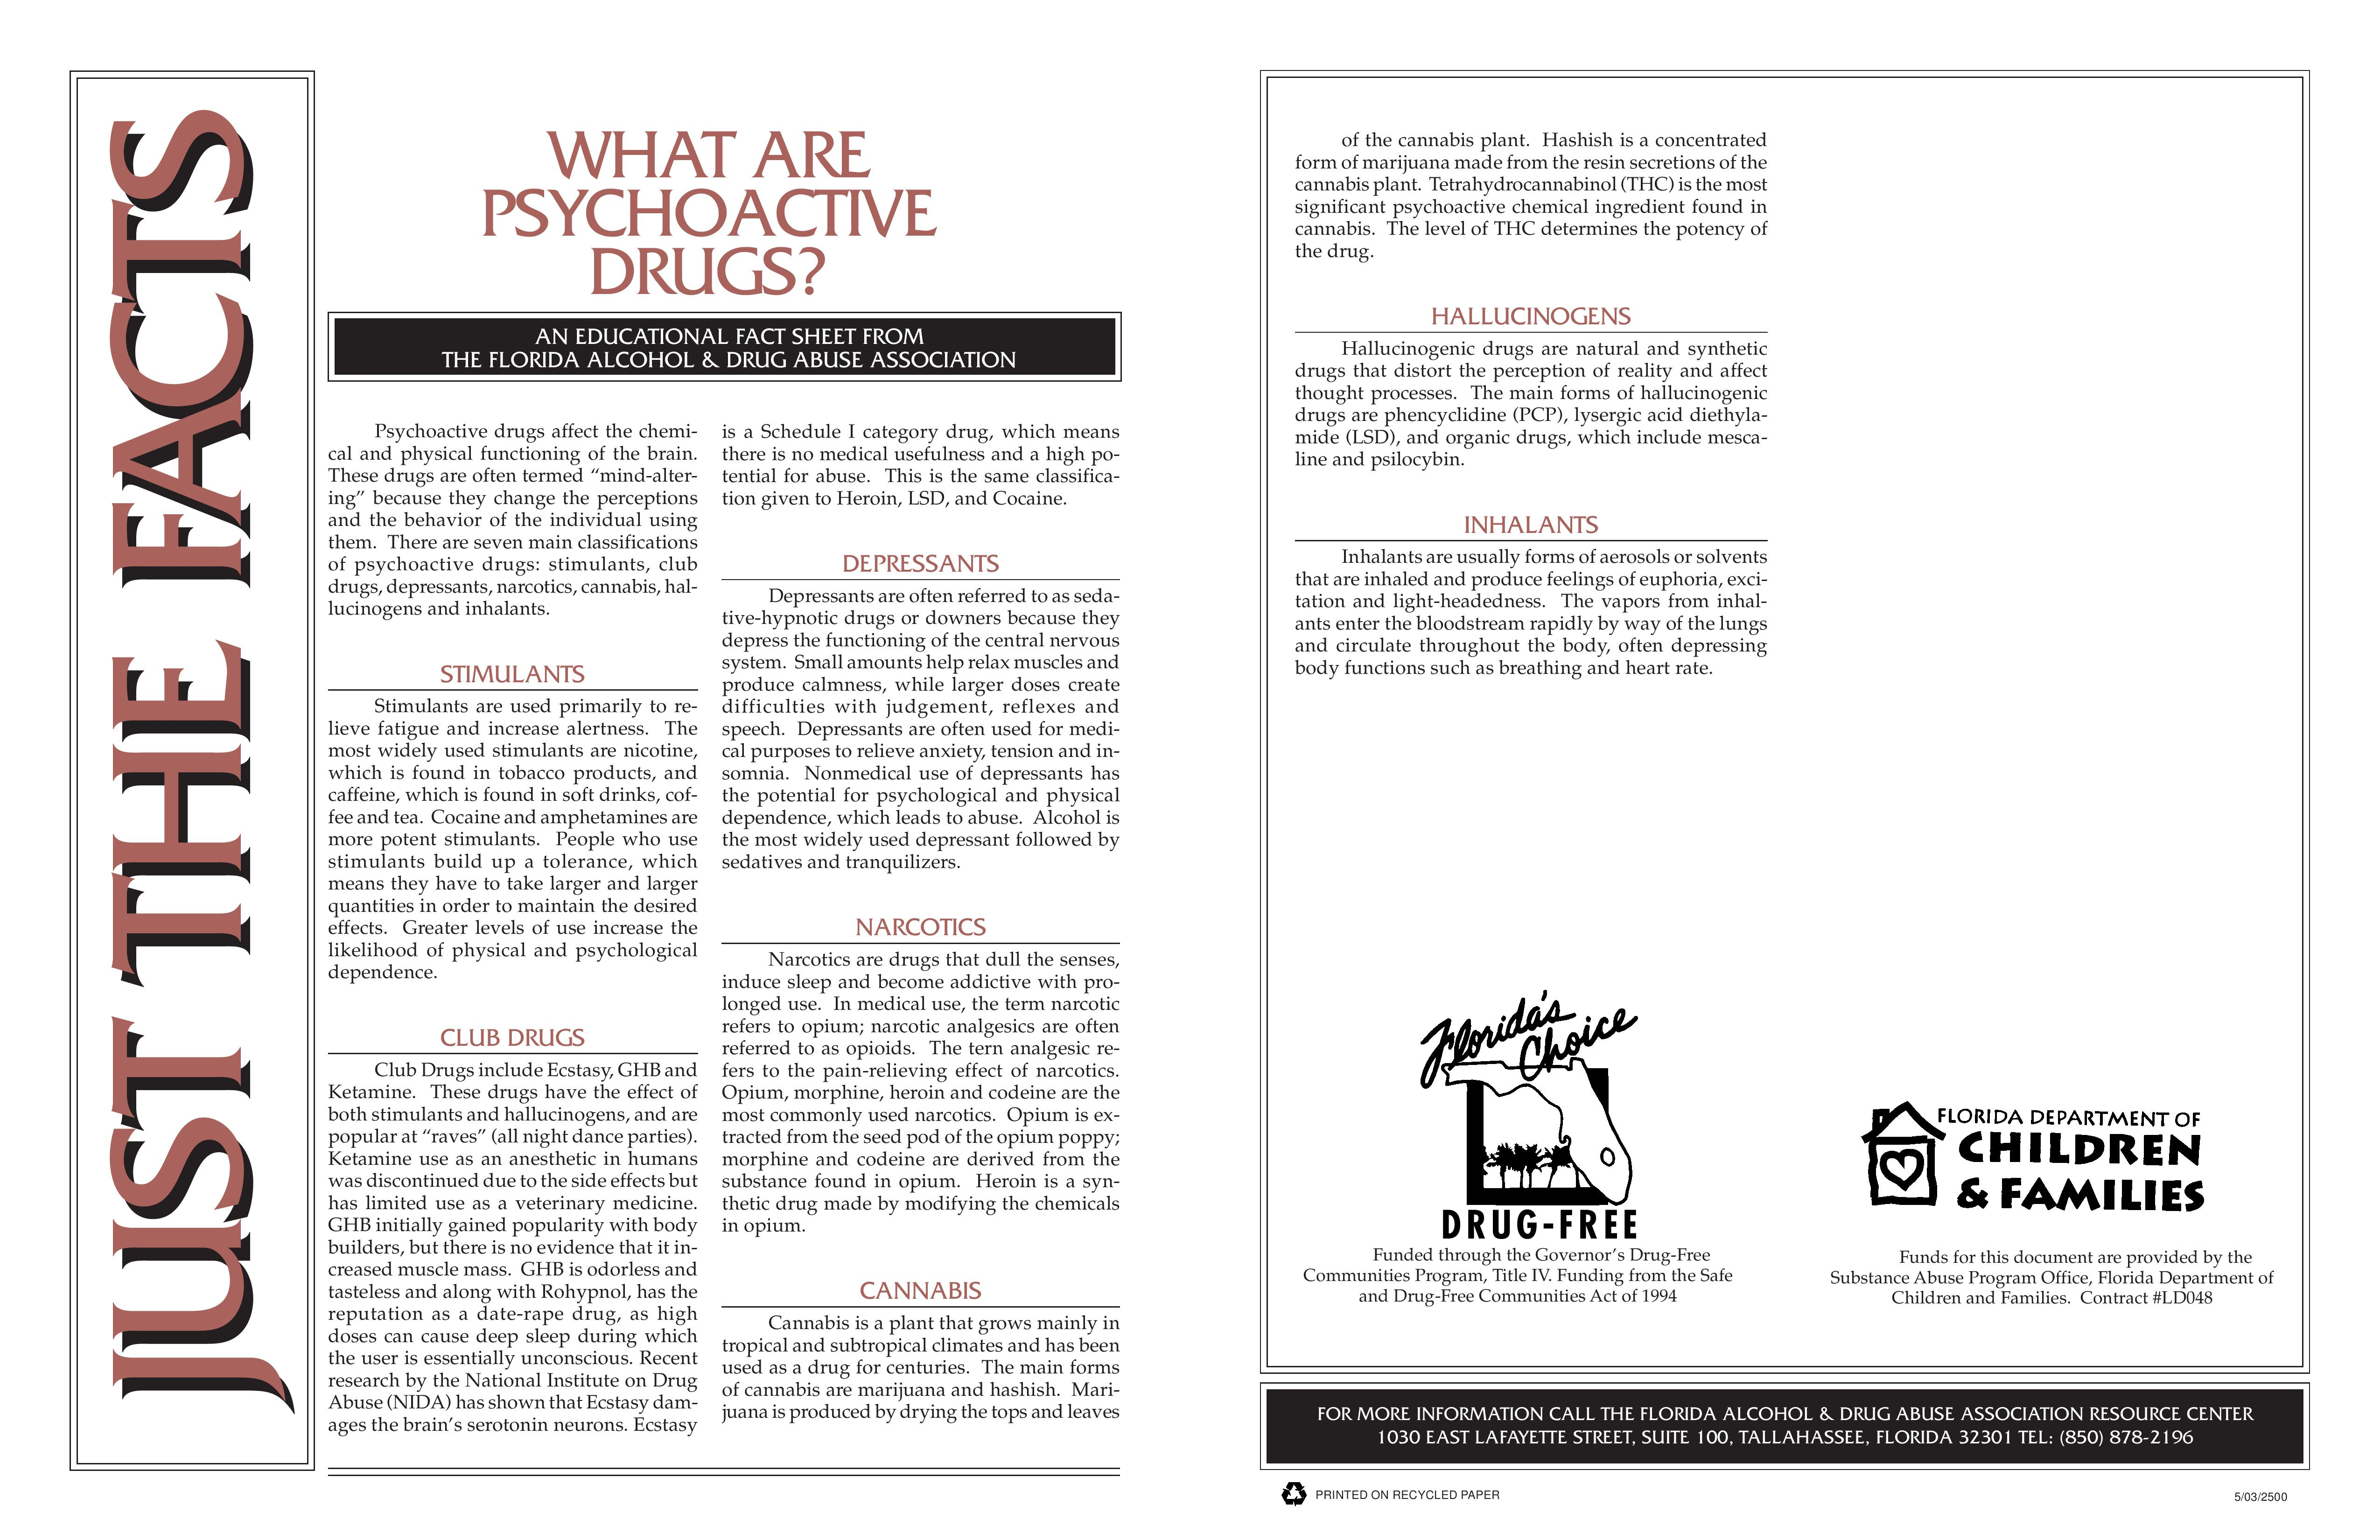 effects of psychoactive drugs essay Psychoactive drugs are classified into four major groups: stimulants, depressants, narcotics, and hallucinogens three other types of drugs - cannabis (marijuana), inhalants, and designer drugs - have the same effects as some drugs in the four major groups.